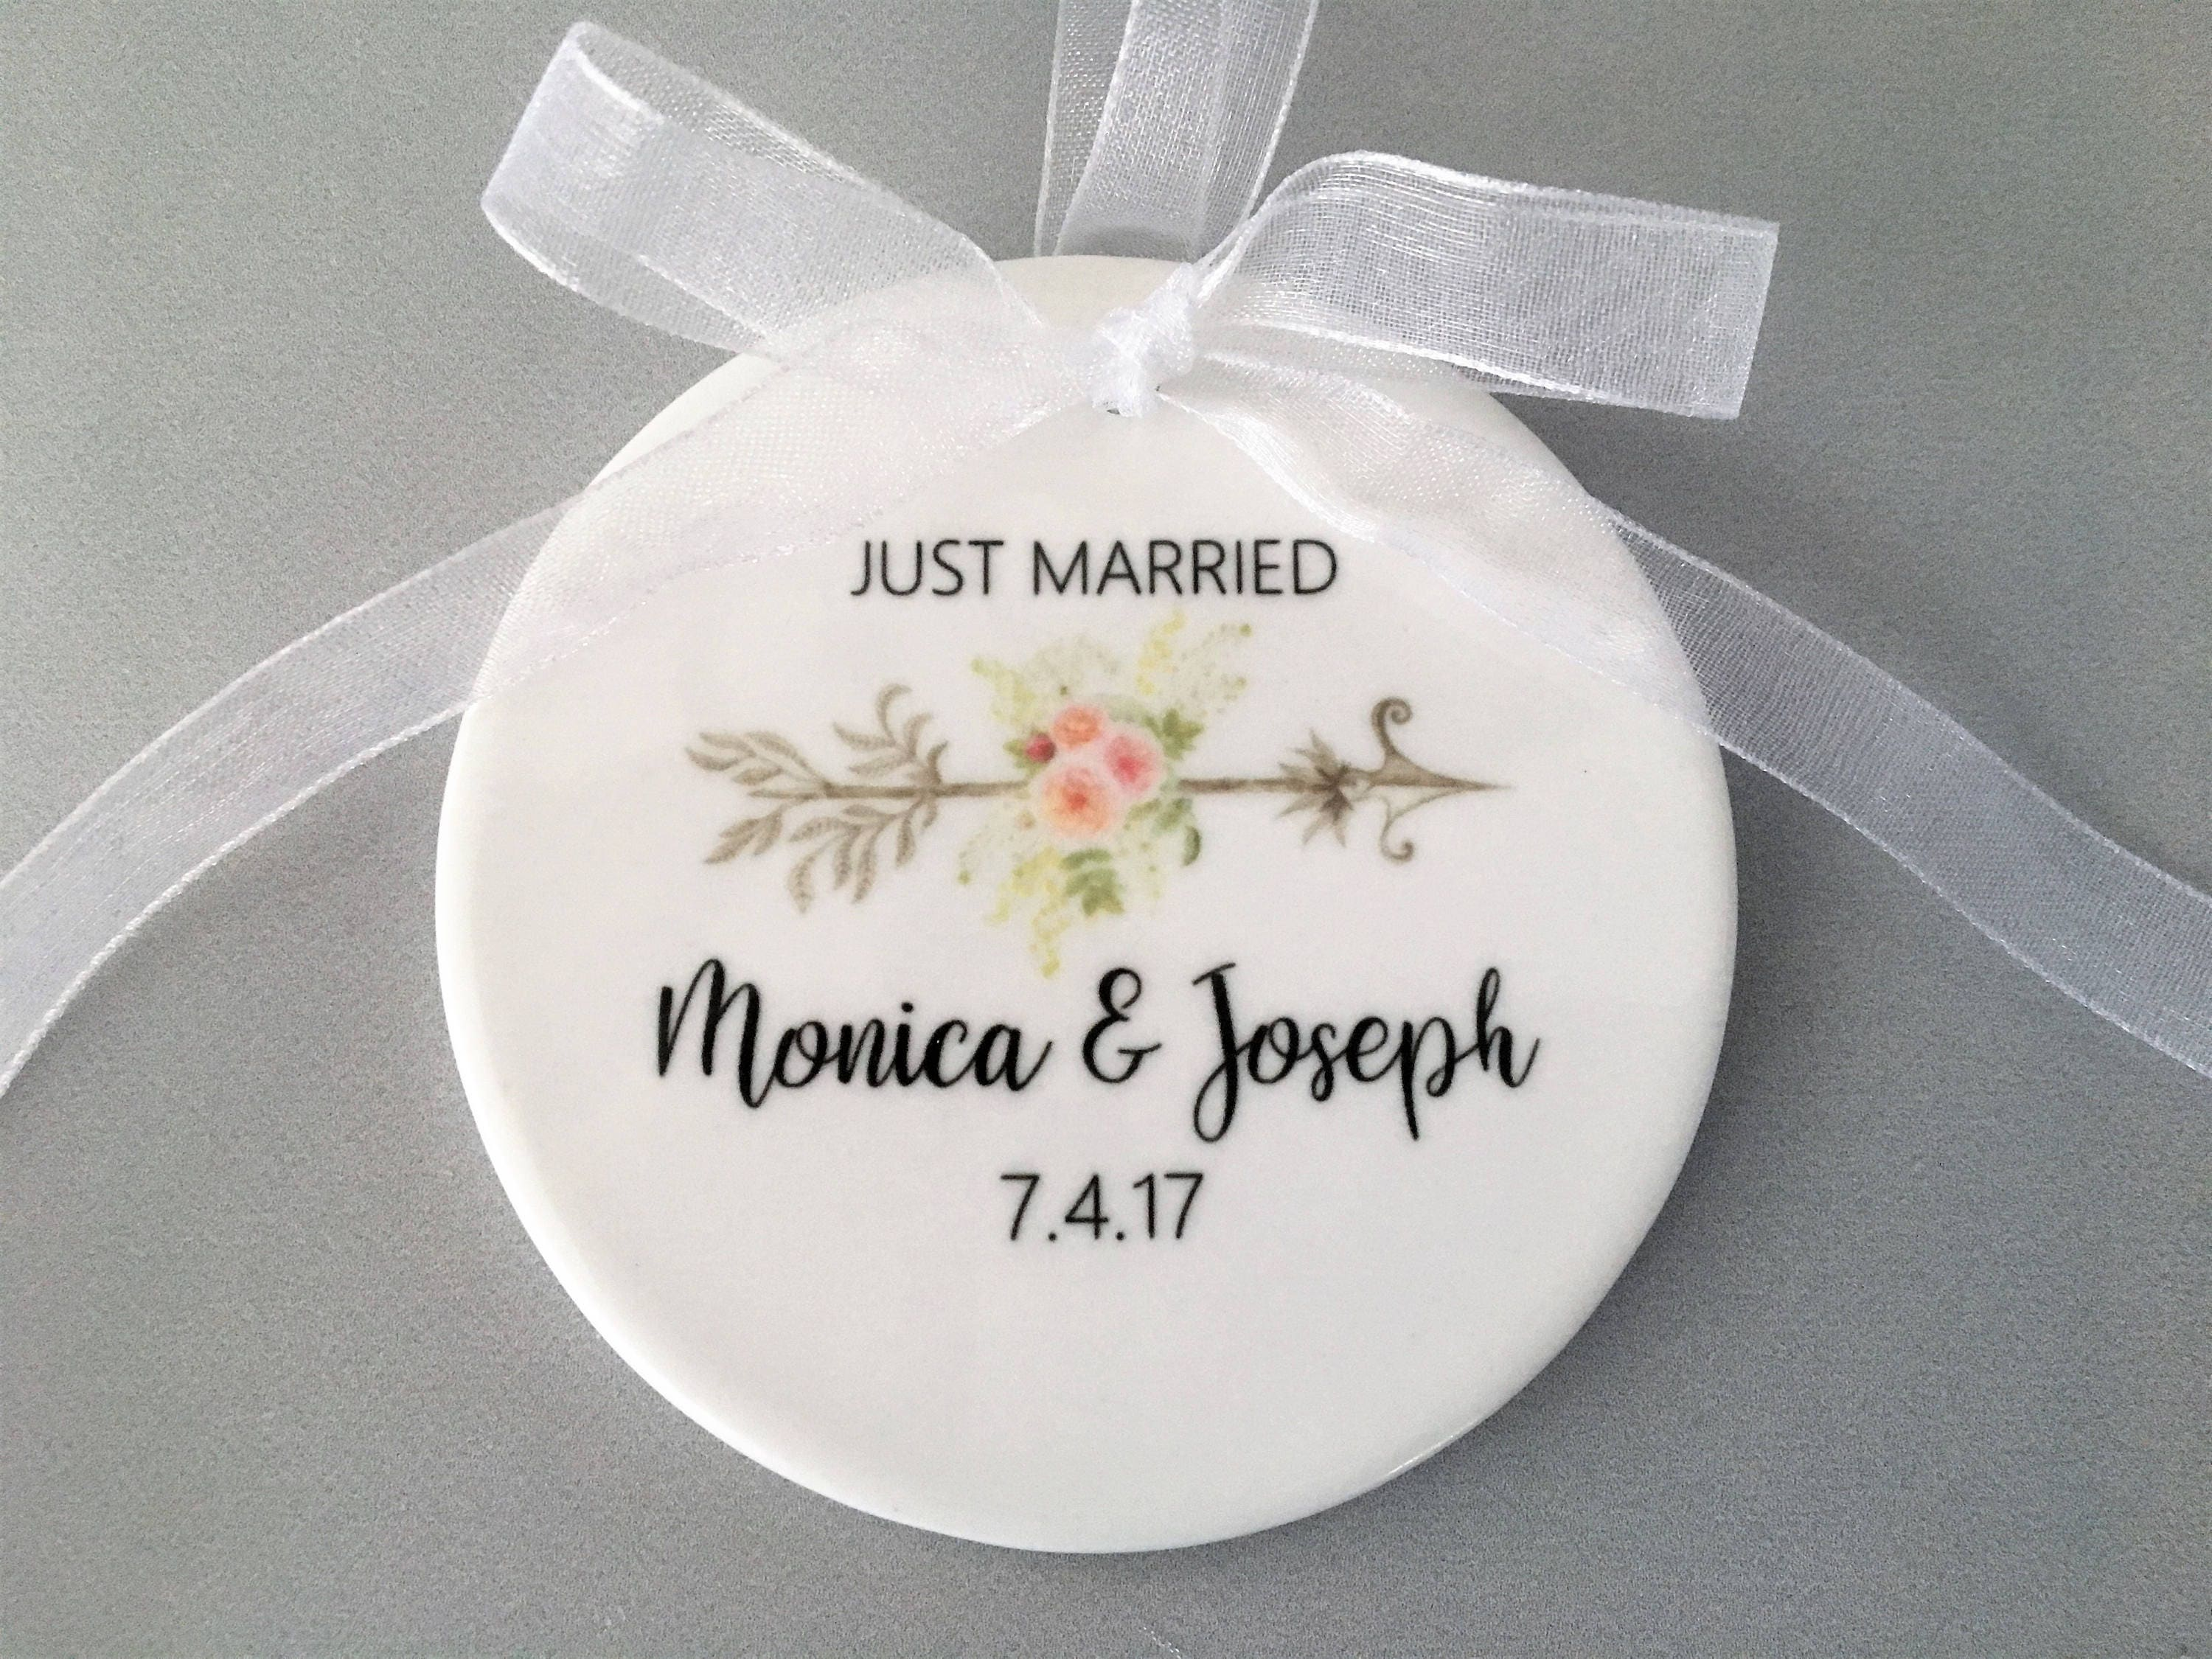 Personalized Wedding Ornament Wedding Ornament Wedding